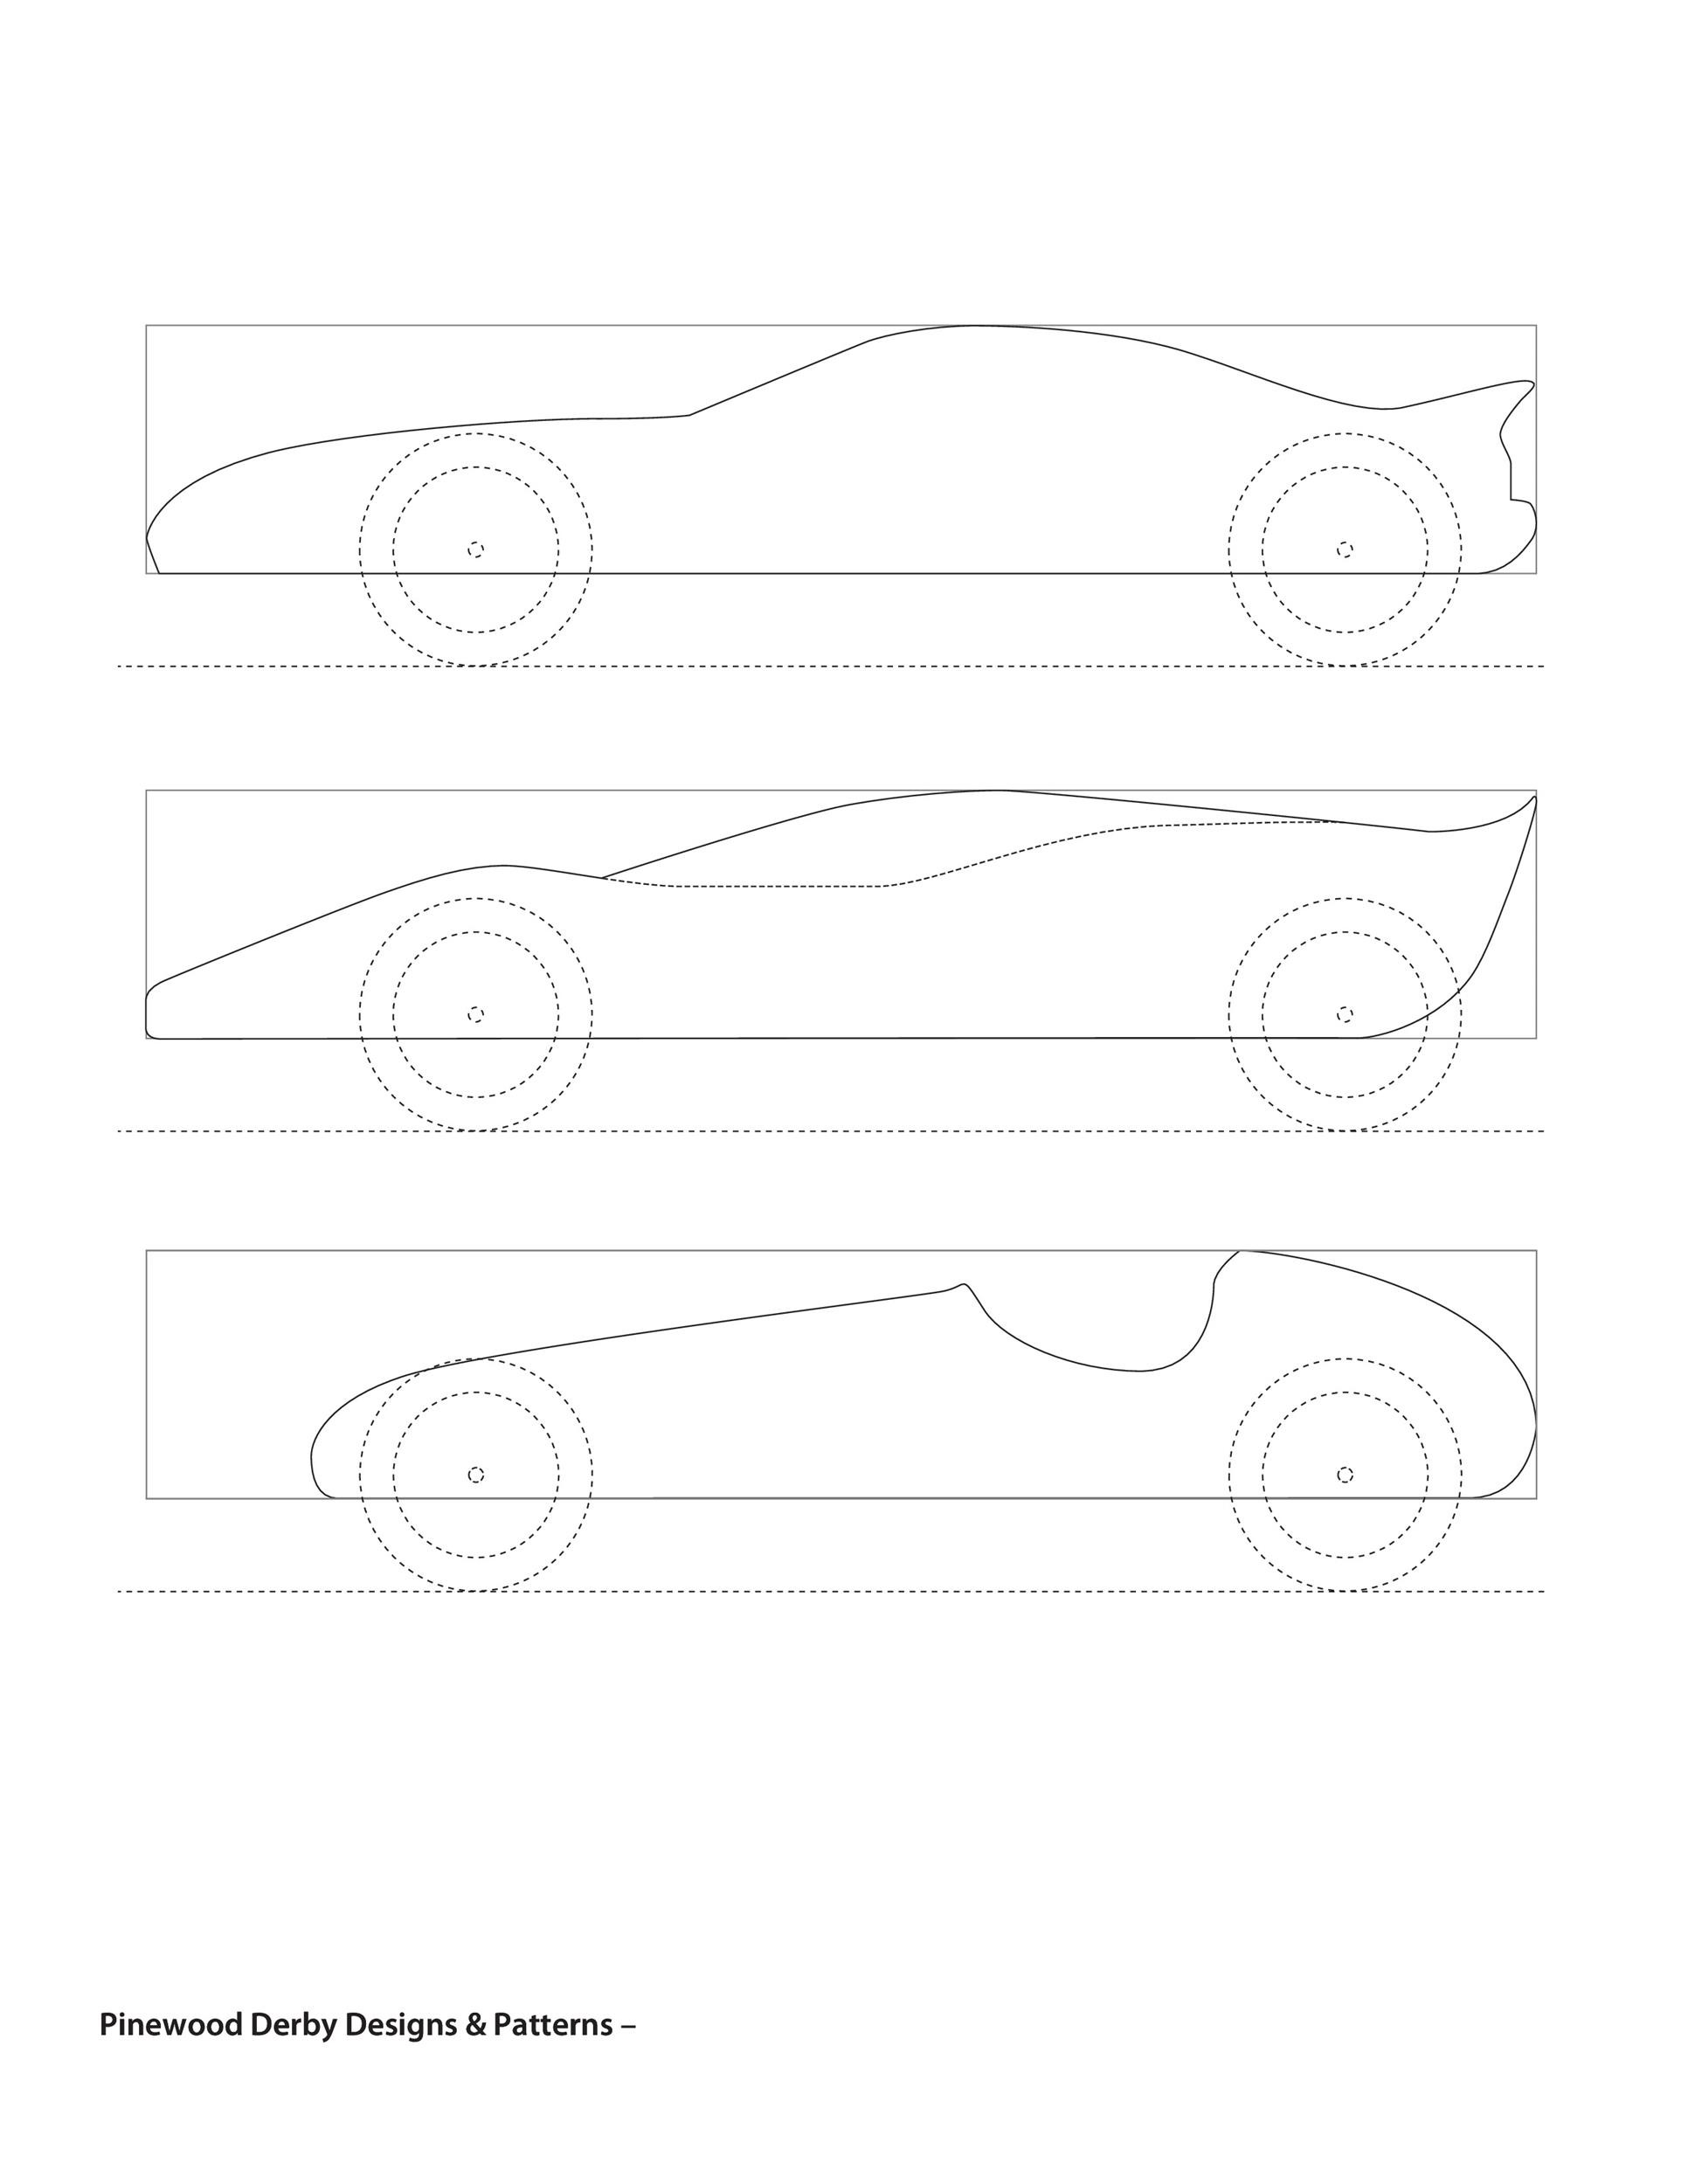 39 awesome pinewood derby car designs templates for Boy scouts pinewood derby templates